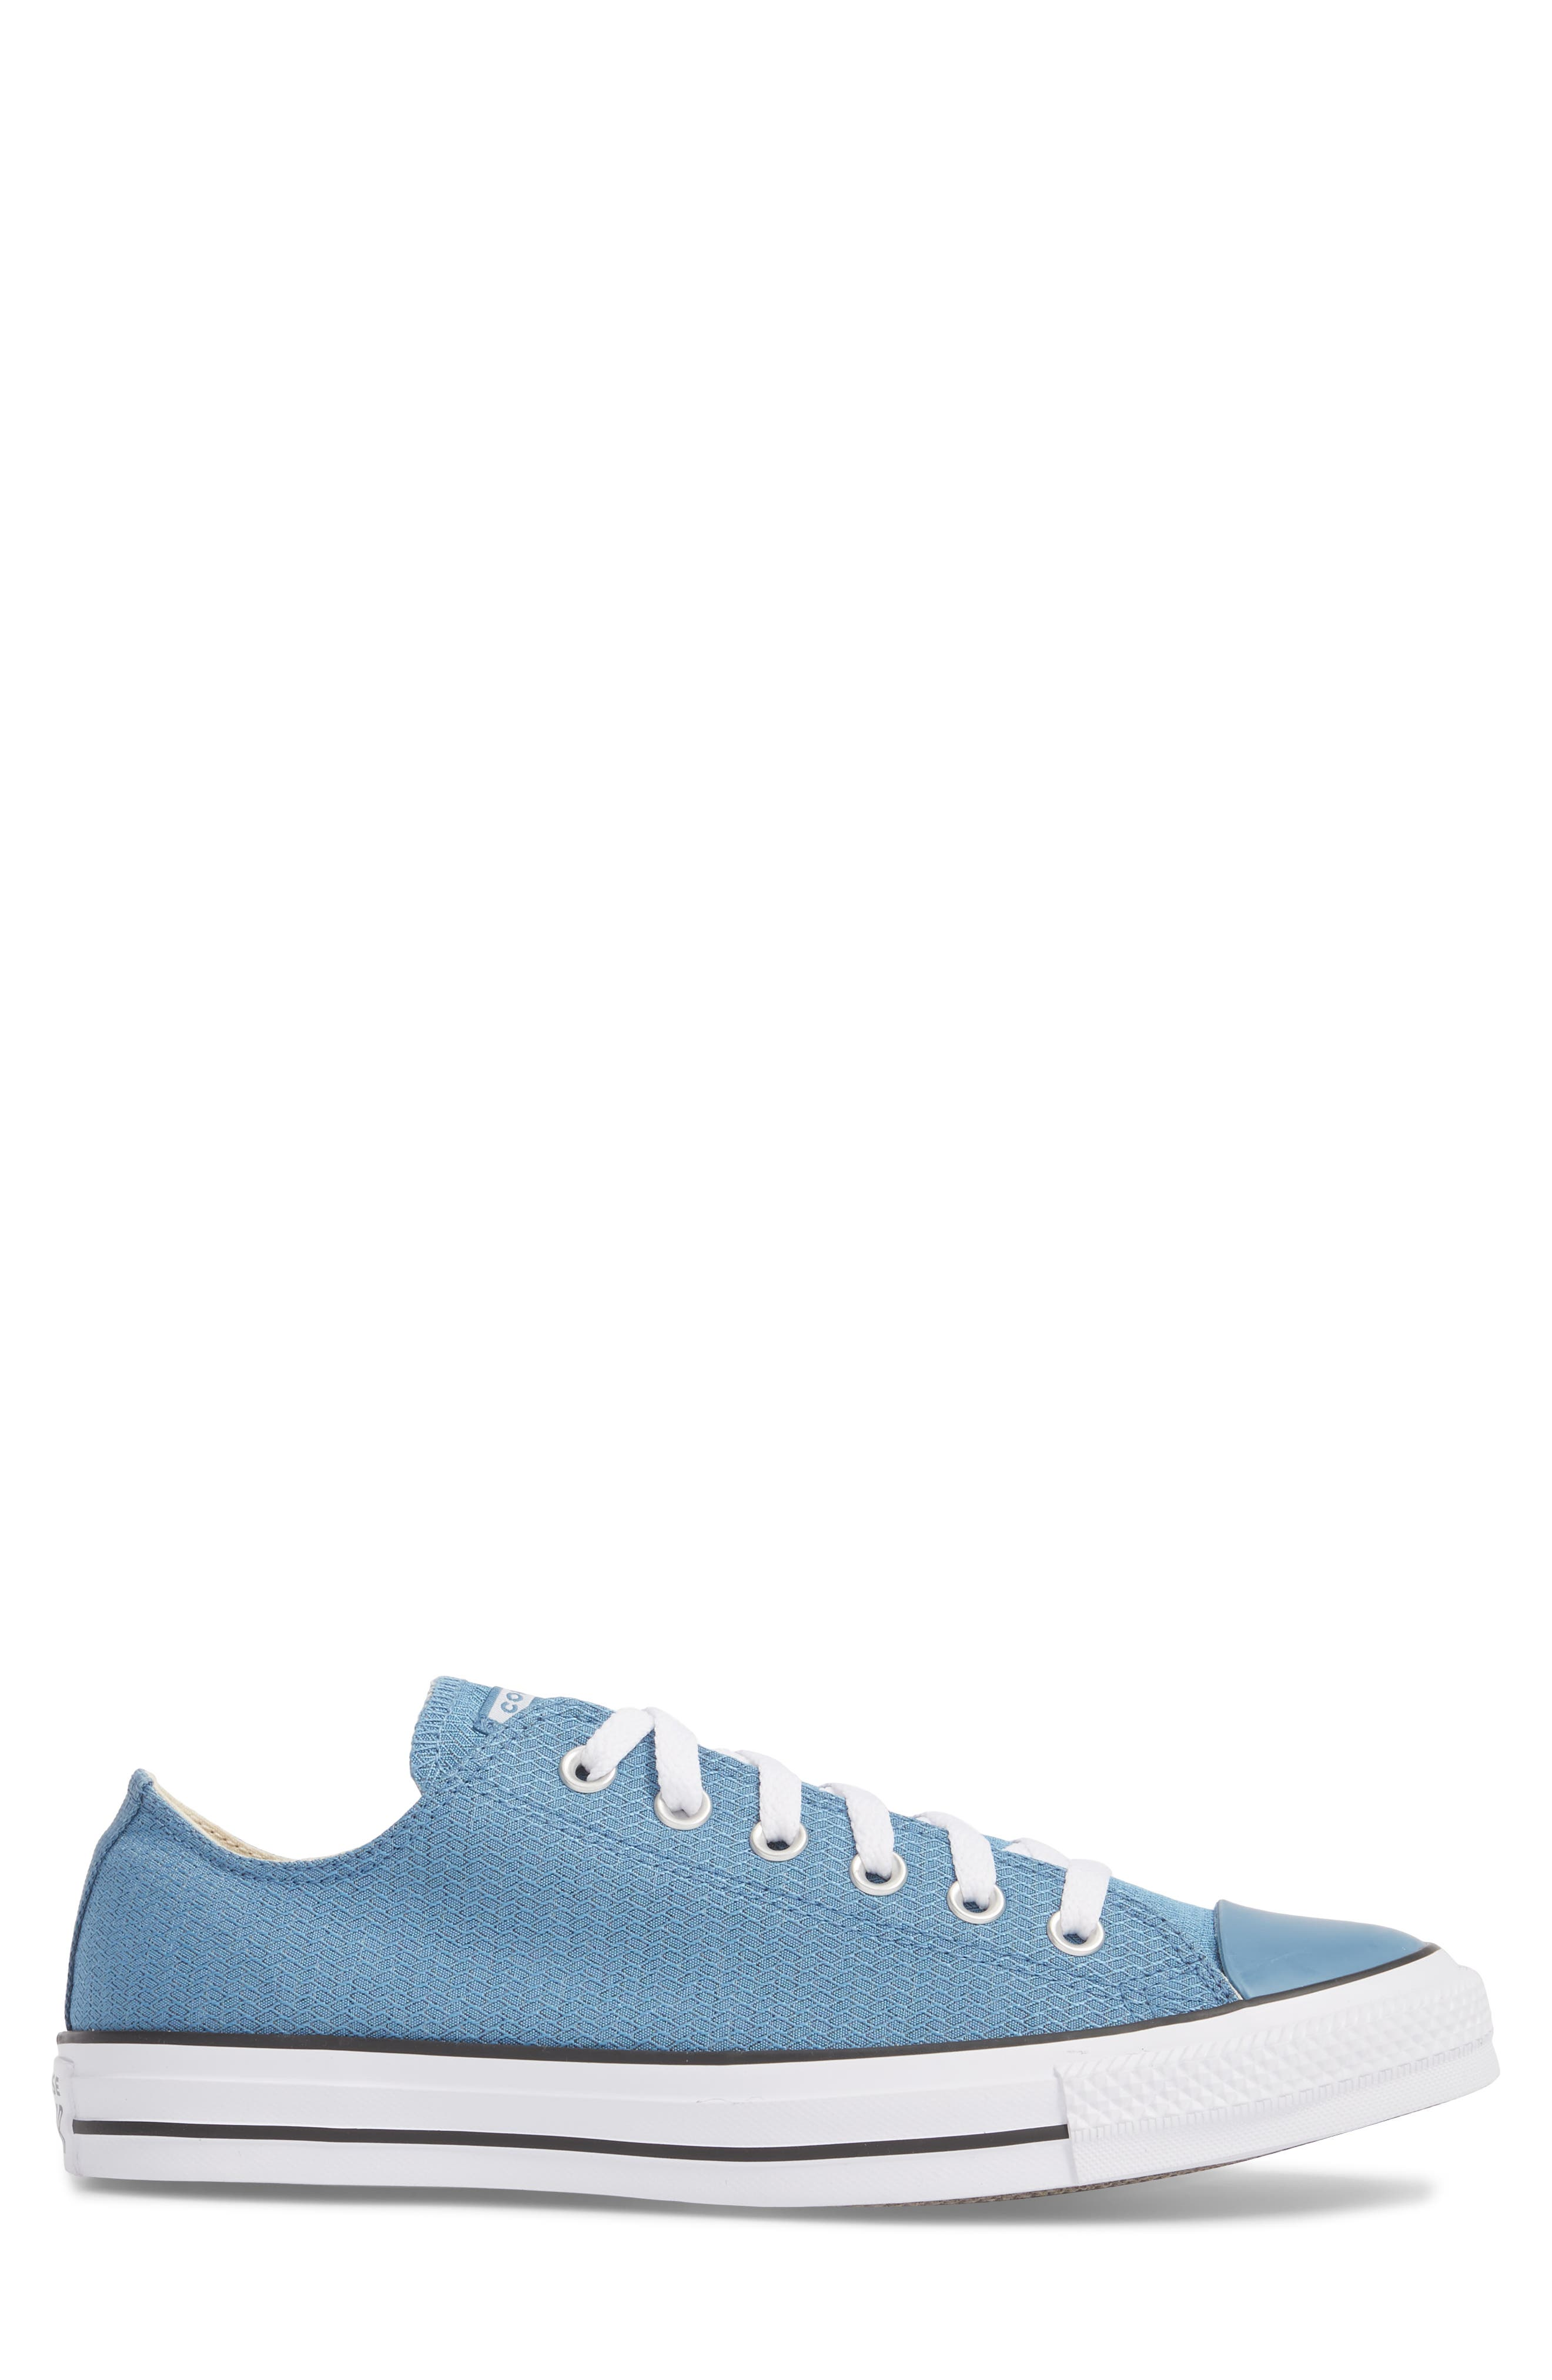 All Star<sup>®</sup> Ripstop Low Top Sneaker,                             Alternate thumbnail 3, color,                             Aegean Storm